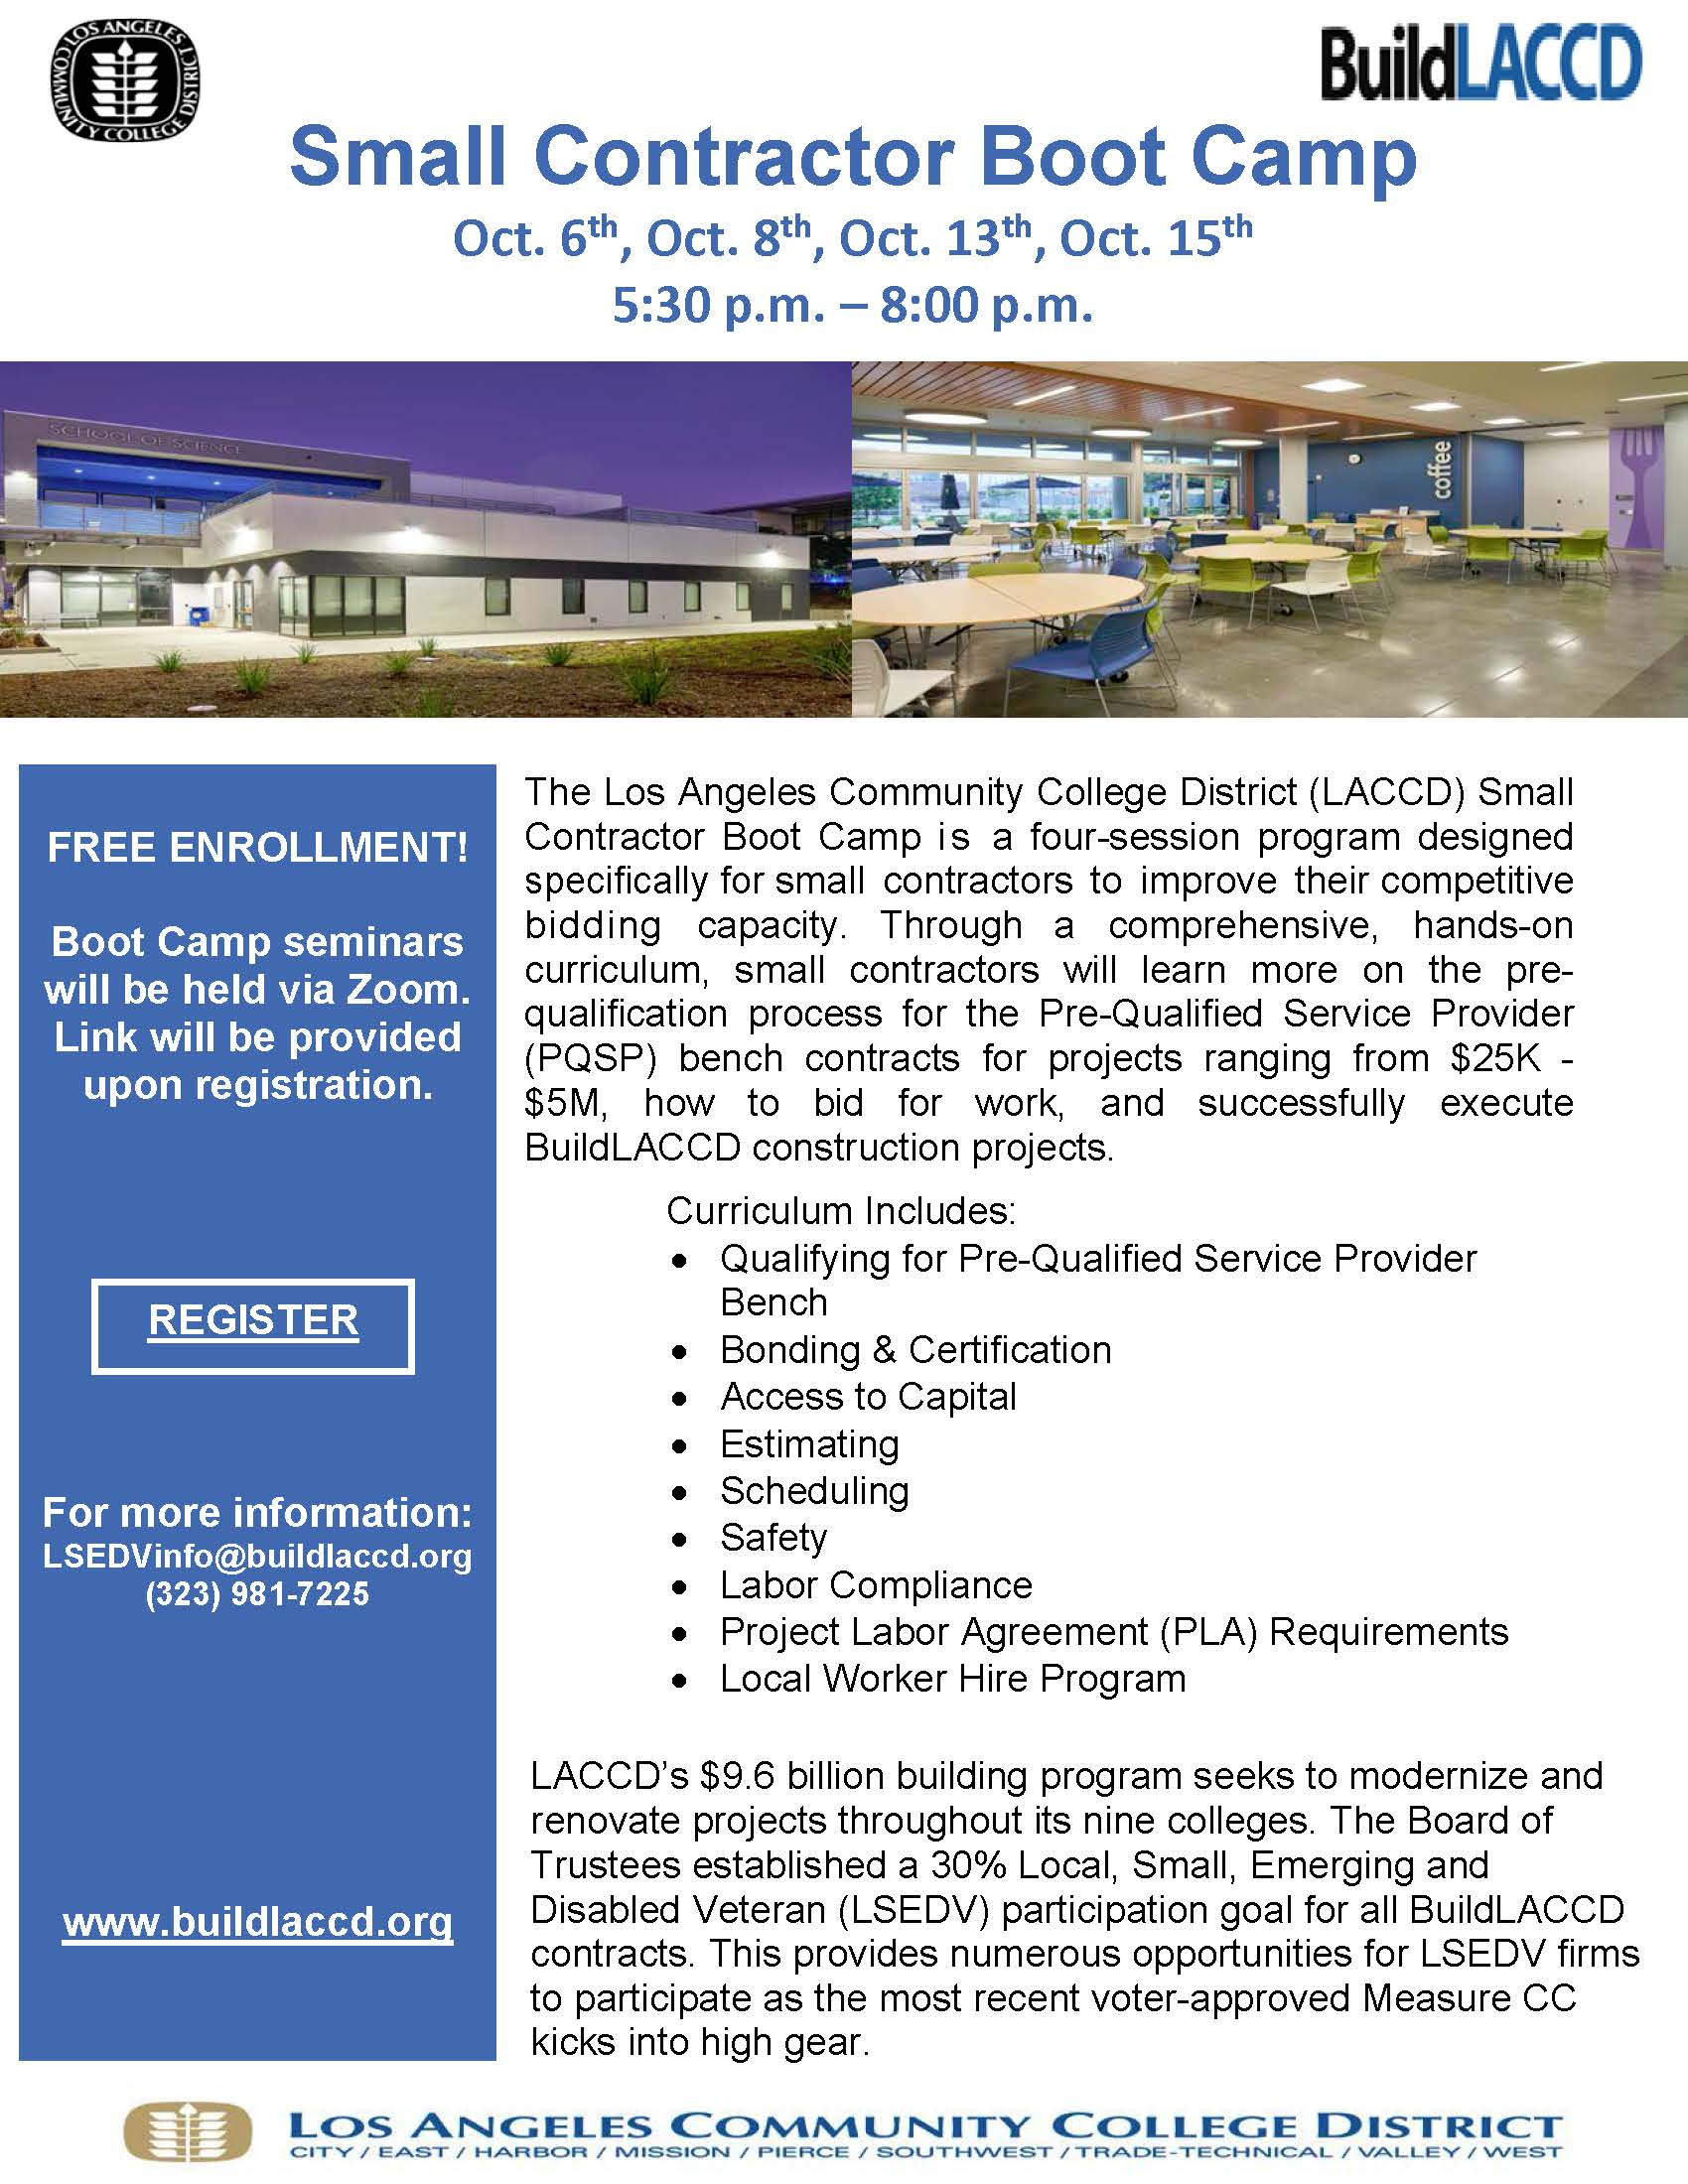 Small Contractor Boot Camp Flyer - October 2020